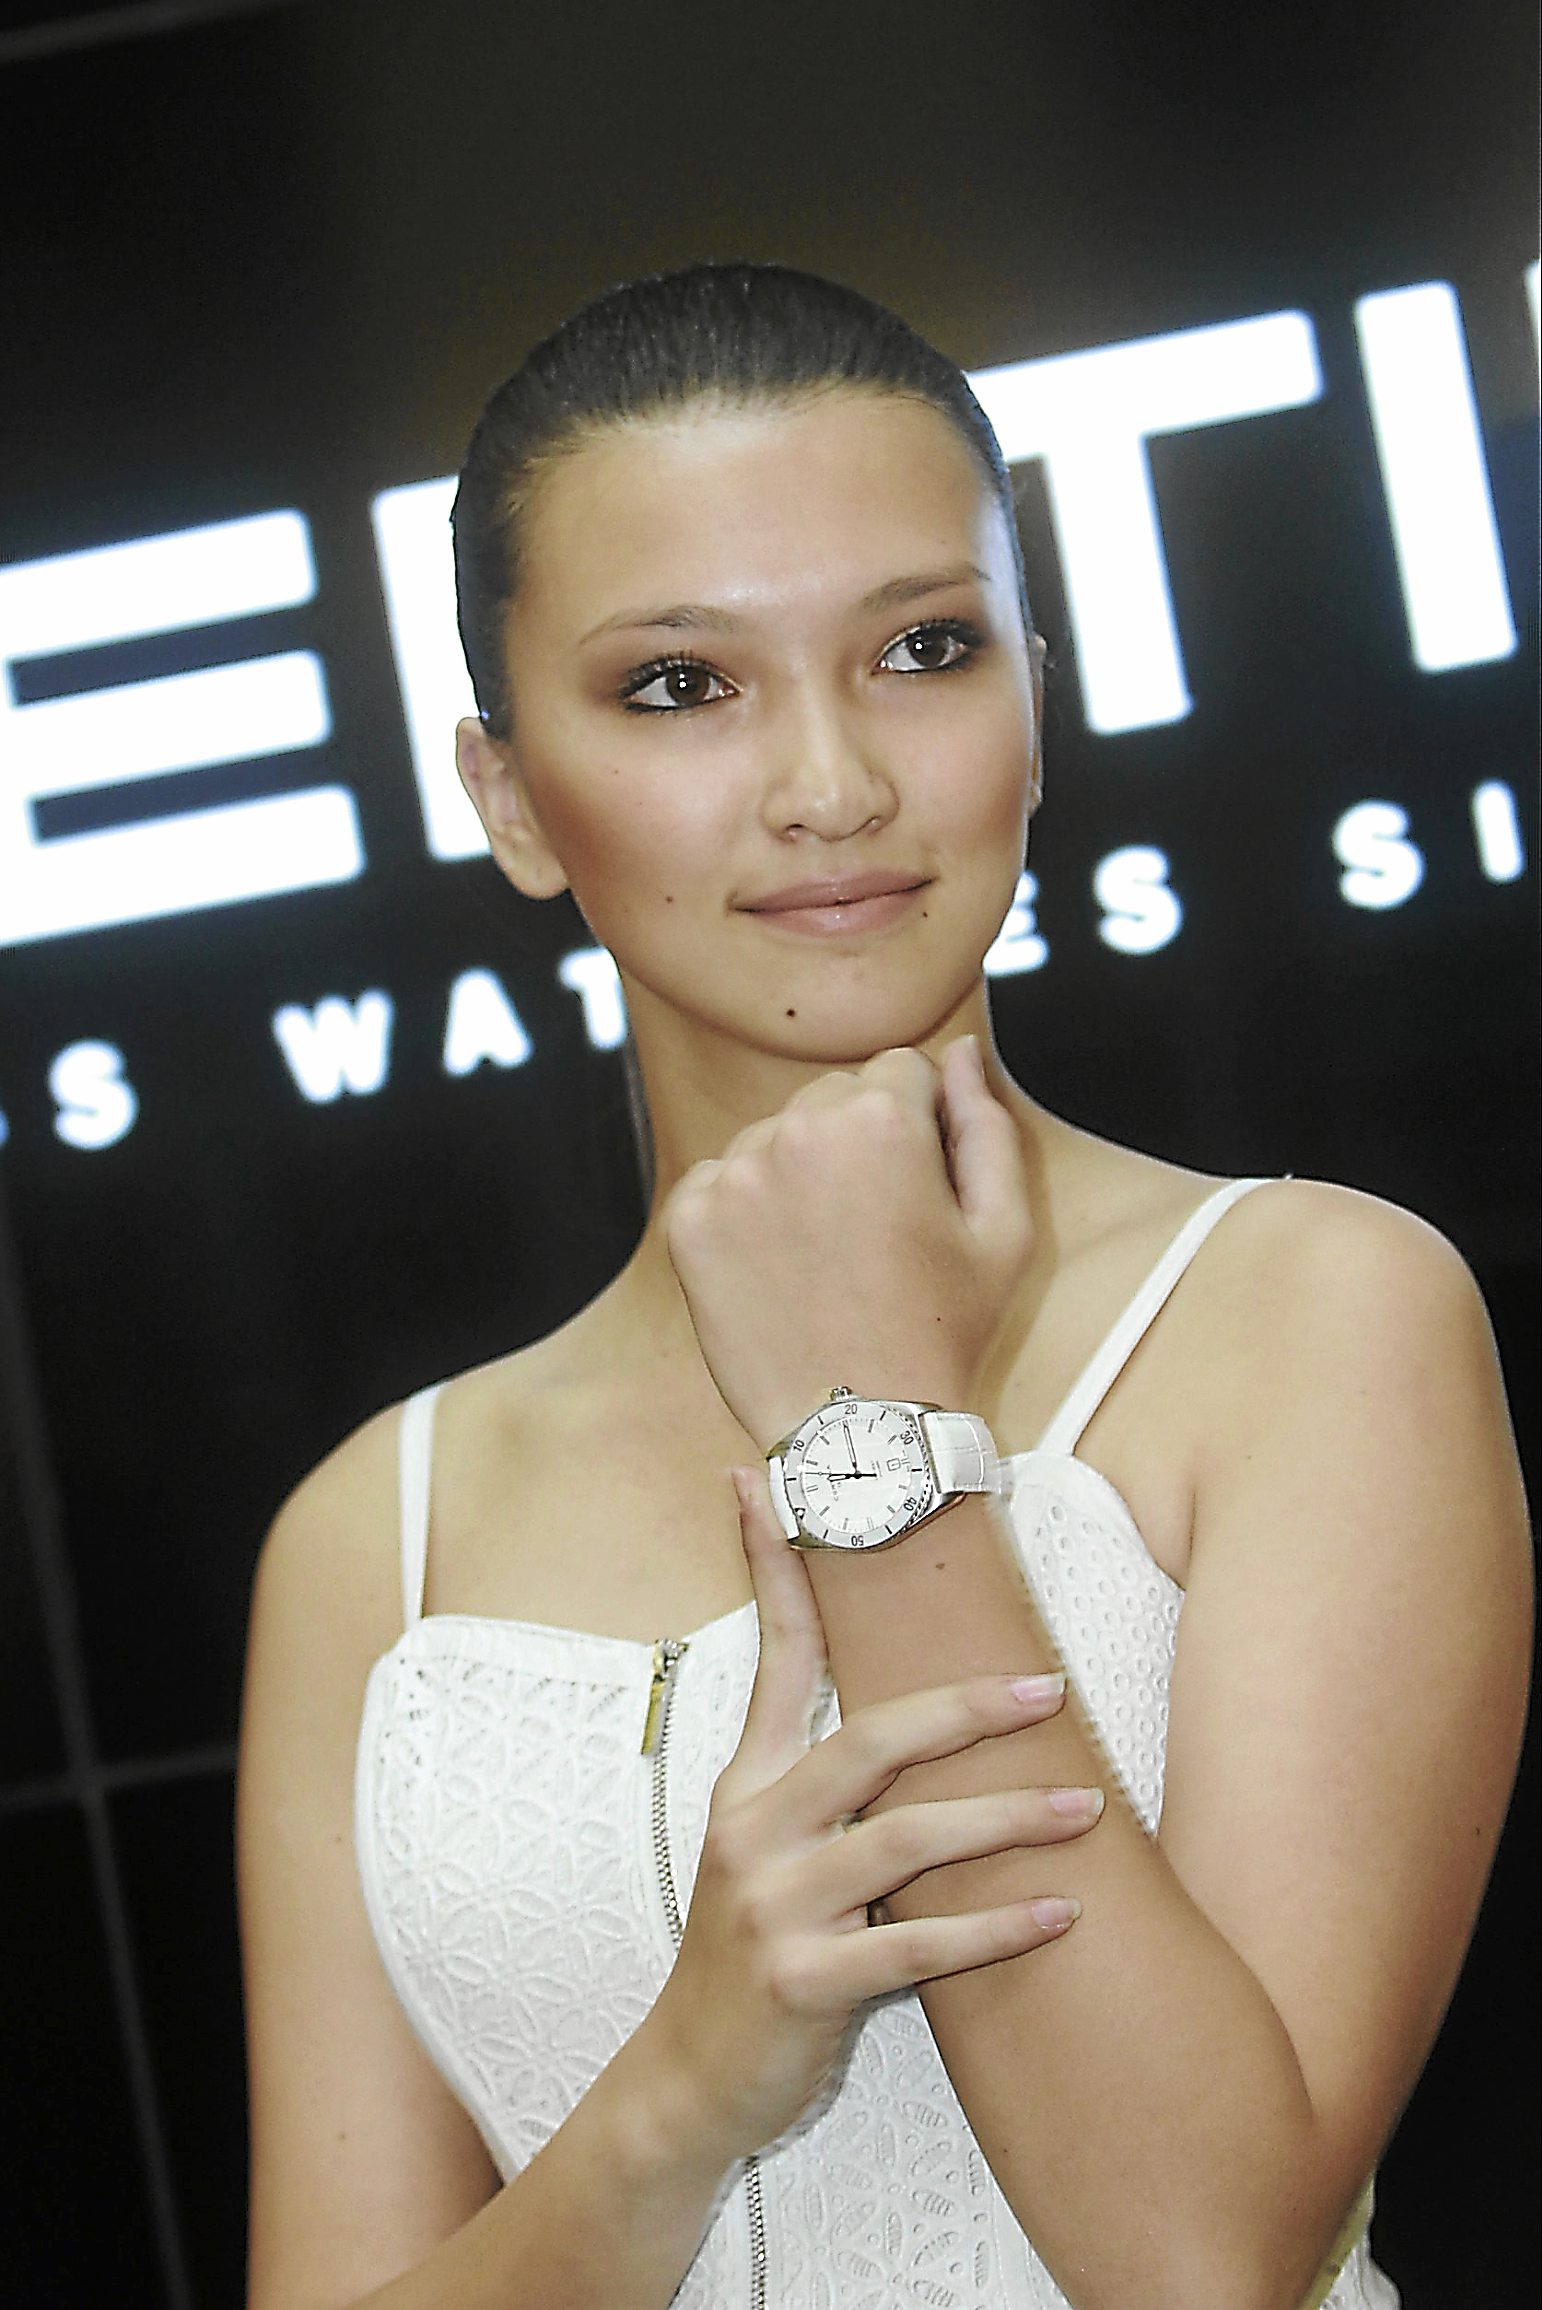 The Certina DS Eagle Chronograph watches unveiled at Certina's new corporate identity launch in Mid Valley Megamall on July 3,2013.